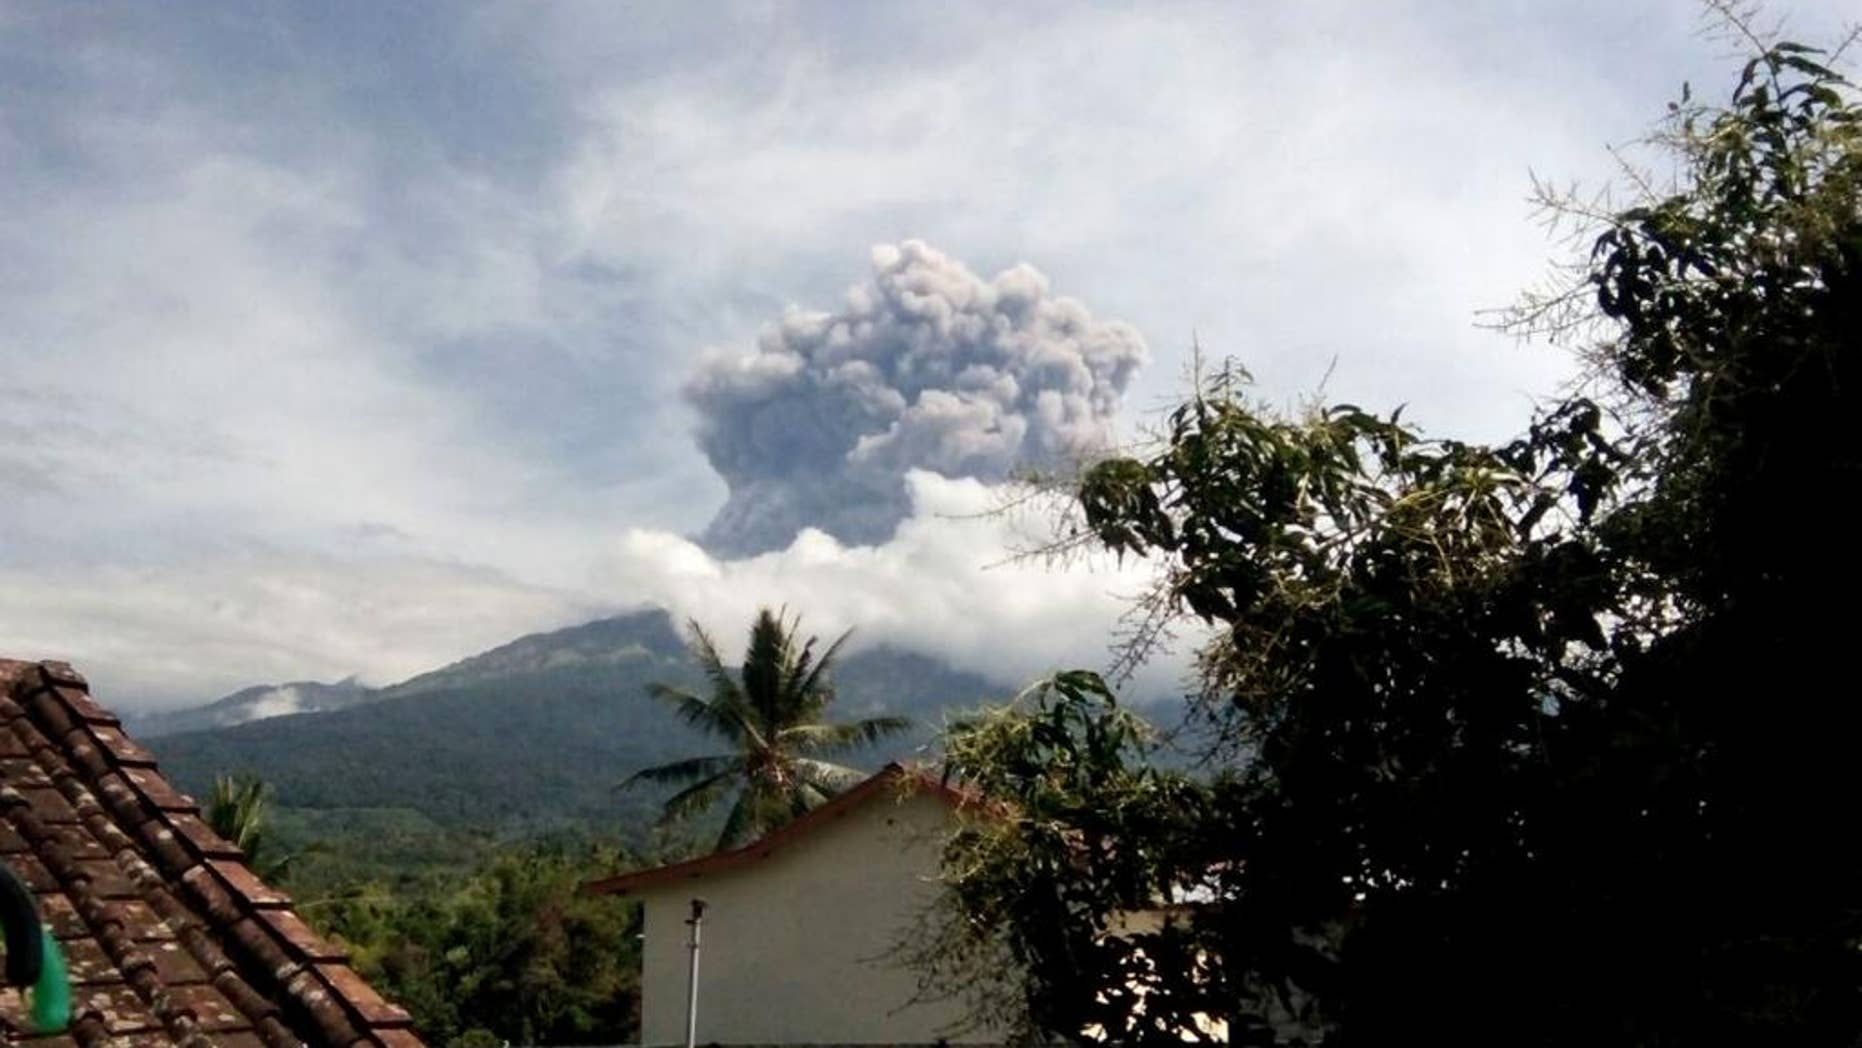 In this Tuesday, Sept. 27, 2016 photo, volcanic material from the eruption of Mount Barujari is seen from Bayan, Lombok Island, Indonesia. The volcano erupted without warning on Tuesday afternoon, delaying flights from airports on the islands of Lombok and Bali. (AP Photo/Denda Wiyana Putri)